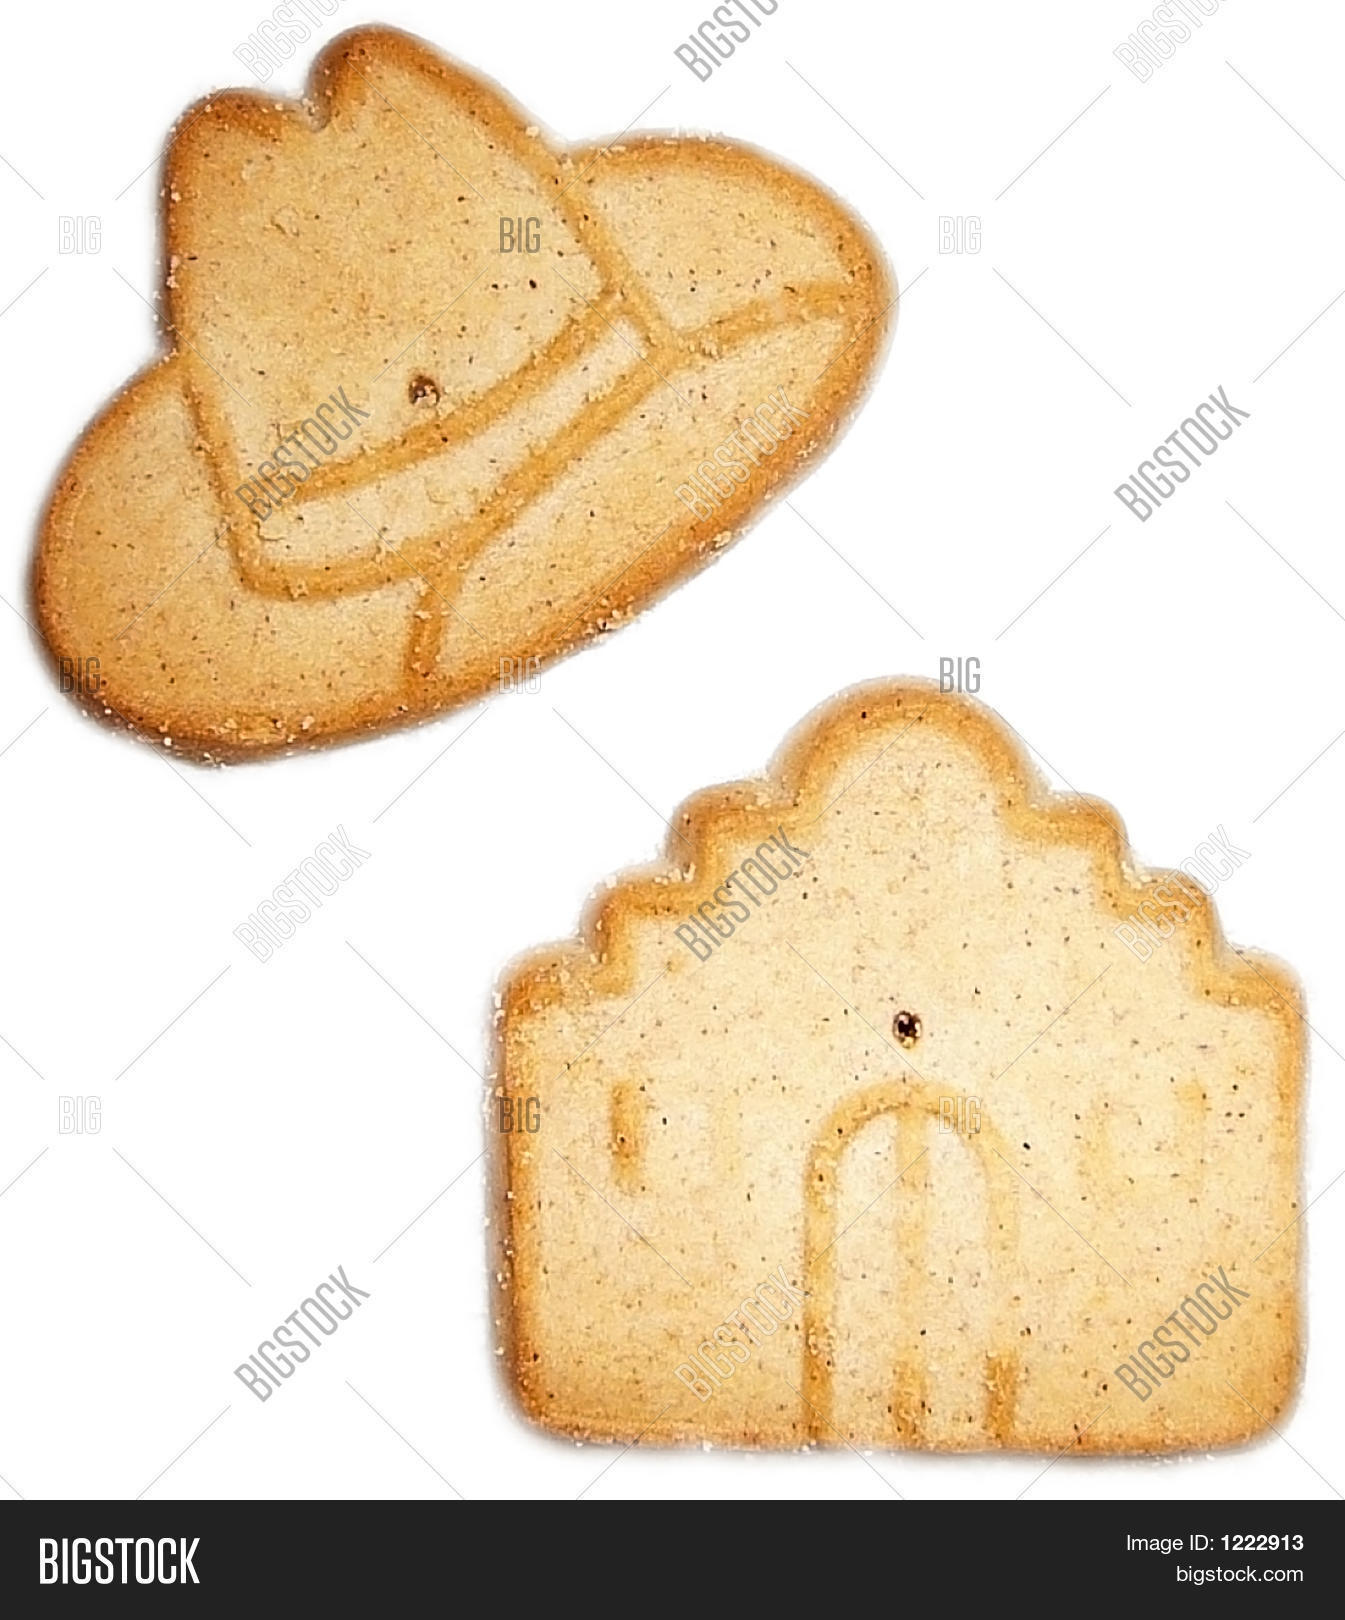 Sugar Cookies Symbols Image Photo Free Trial Bigstock